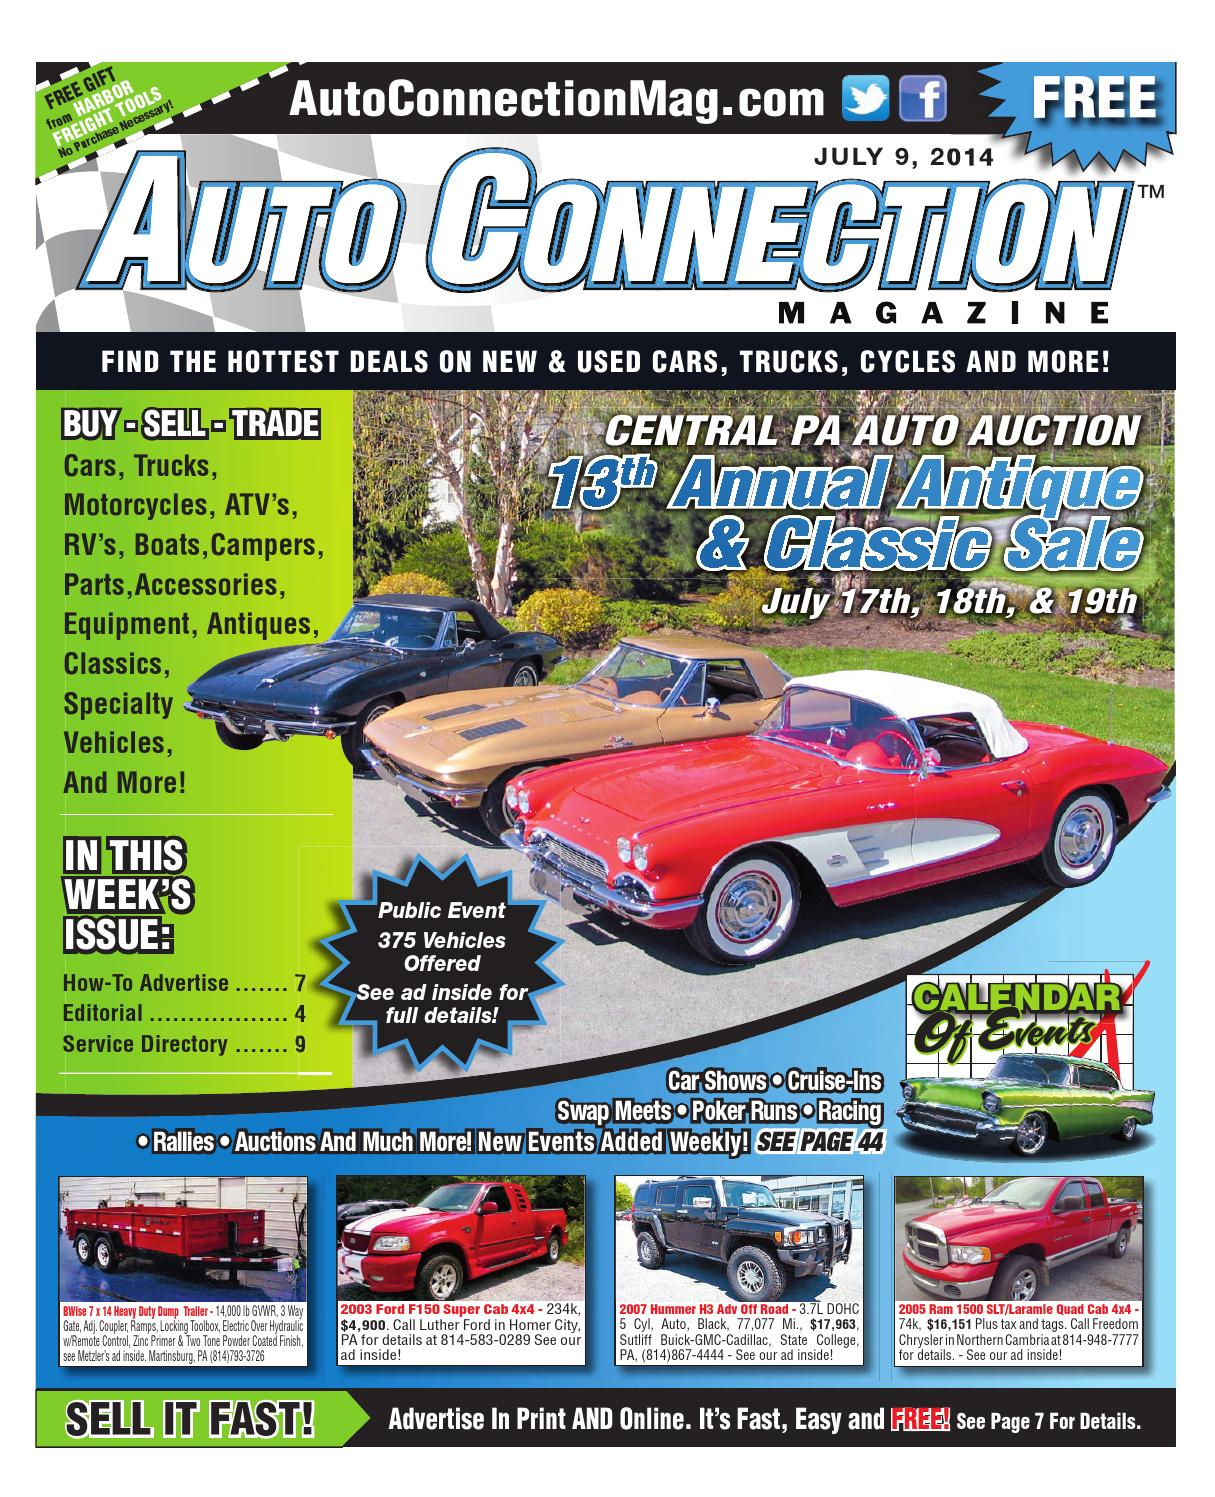 07-09-14 Auto Connection Magazine by Auto Connection